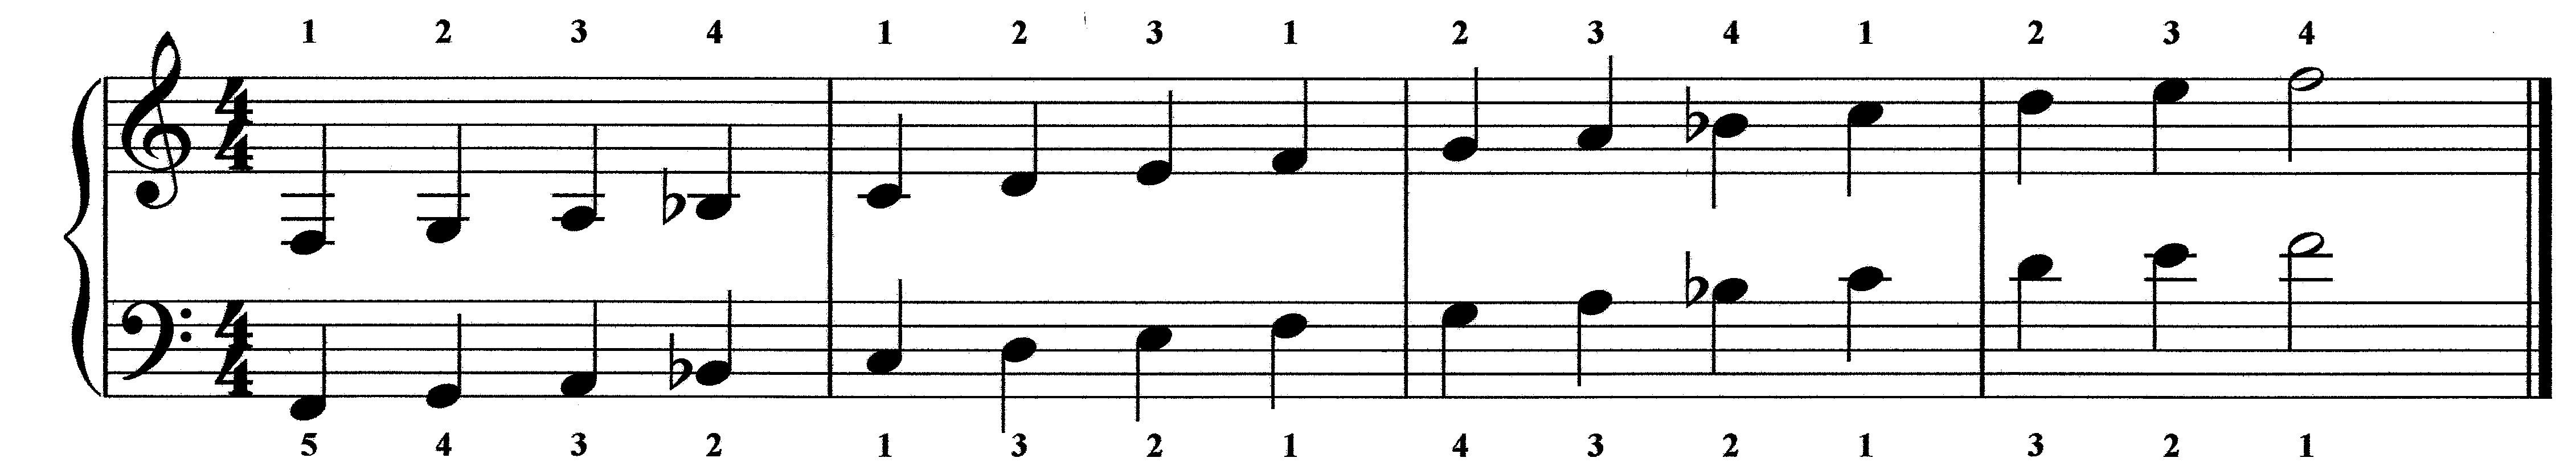 image relating to Piano Scales Printable referred to as Most significant Scales